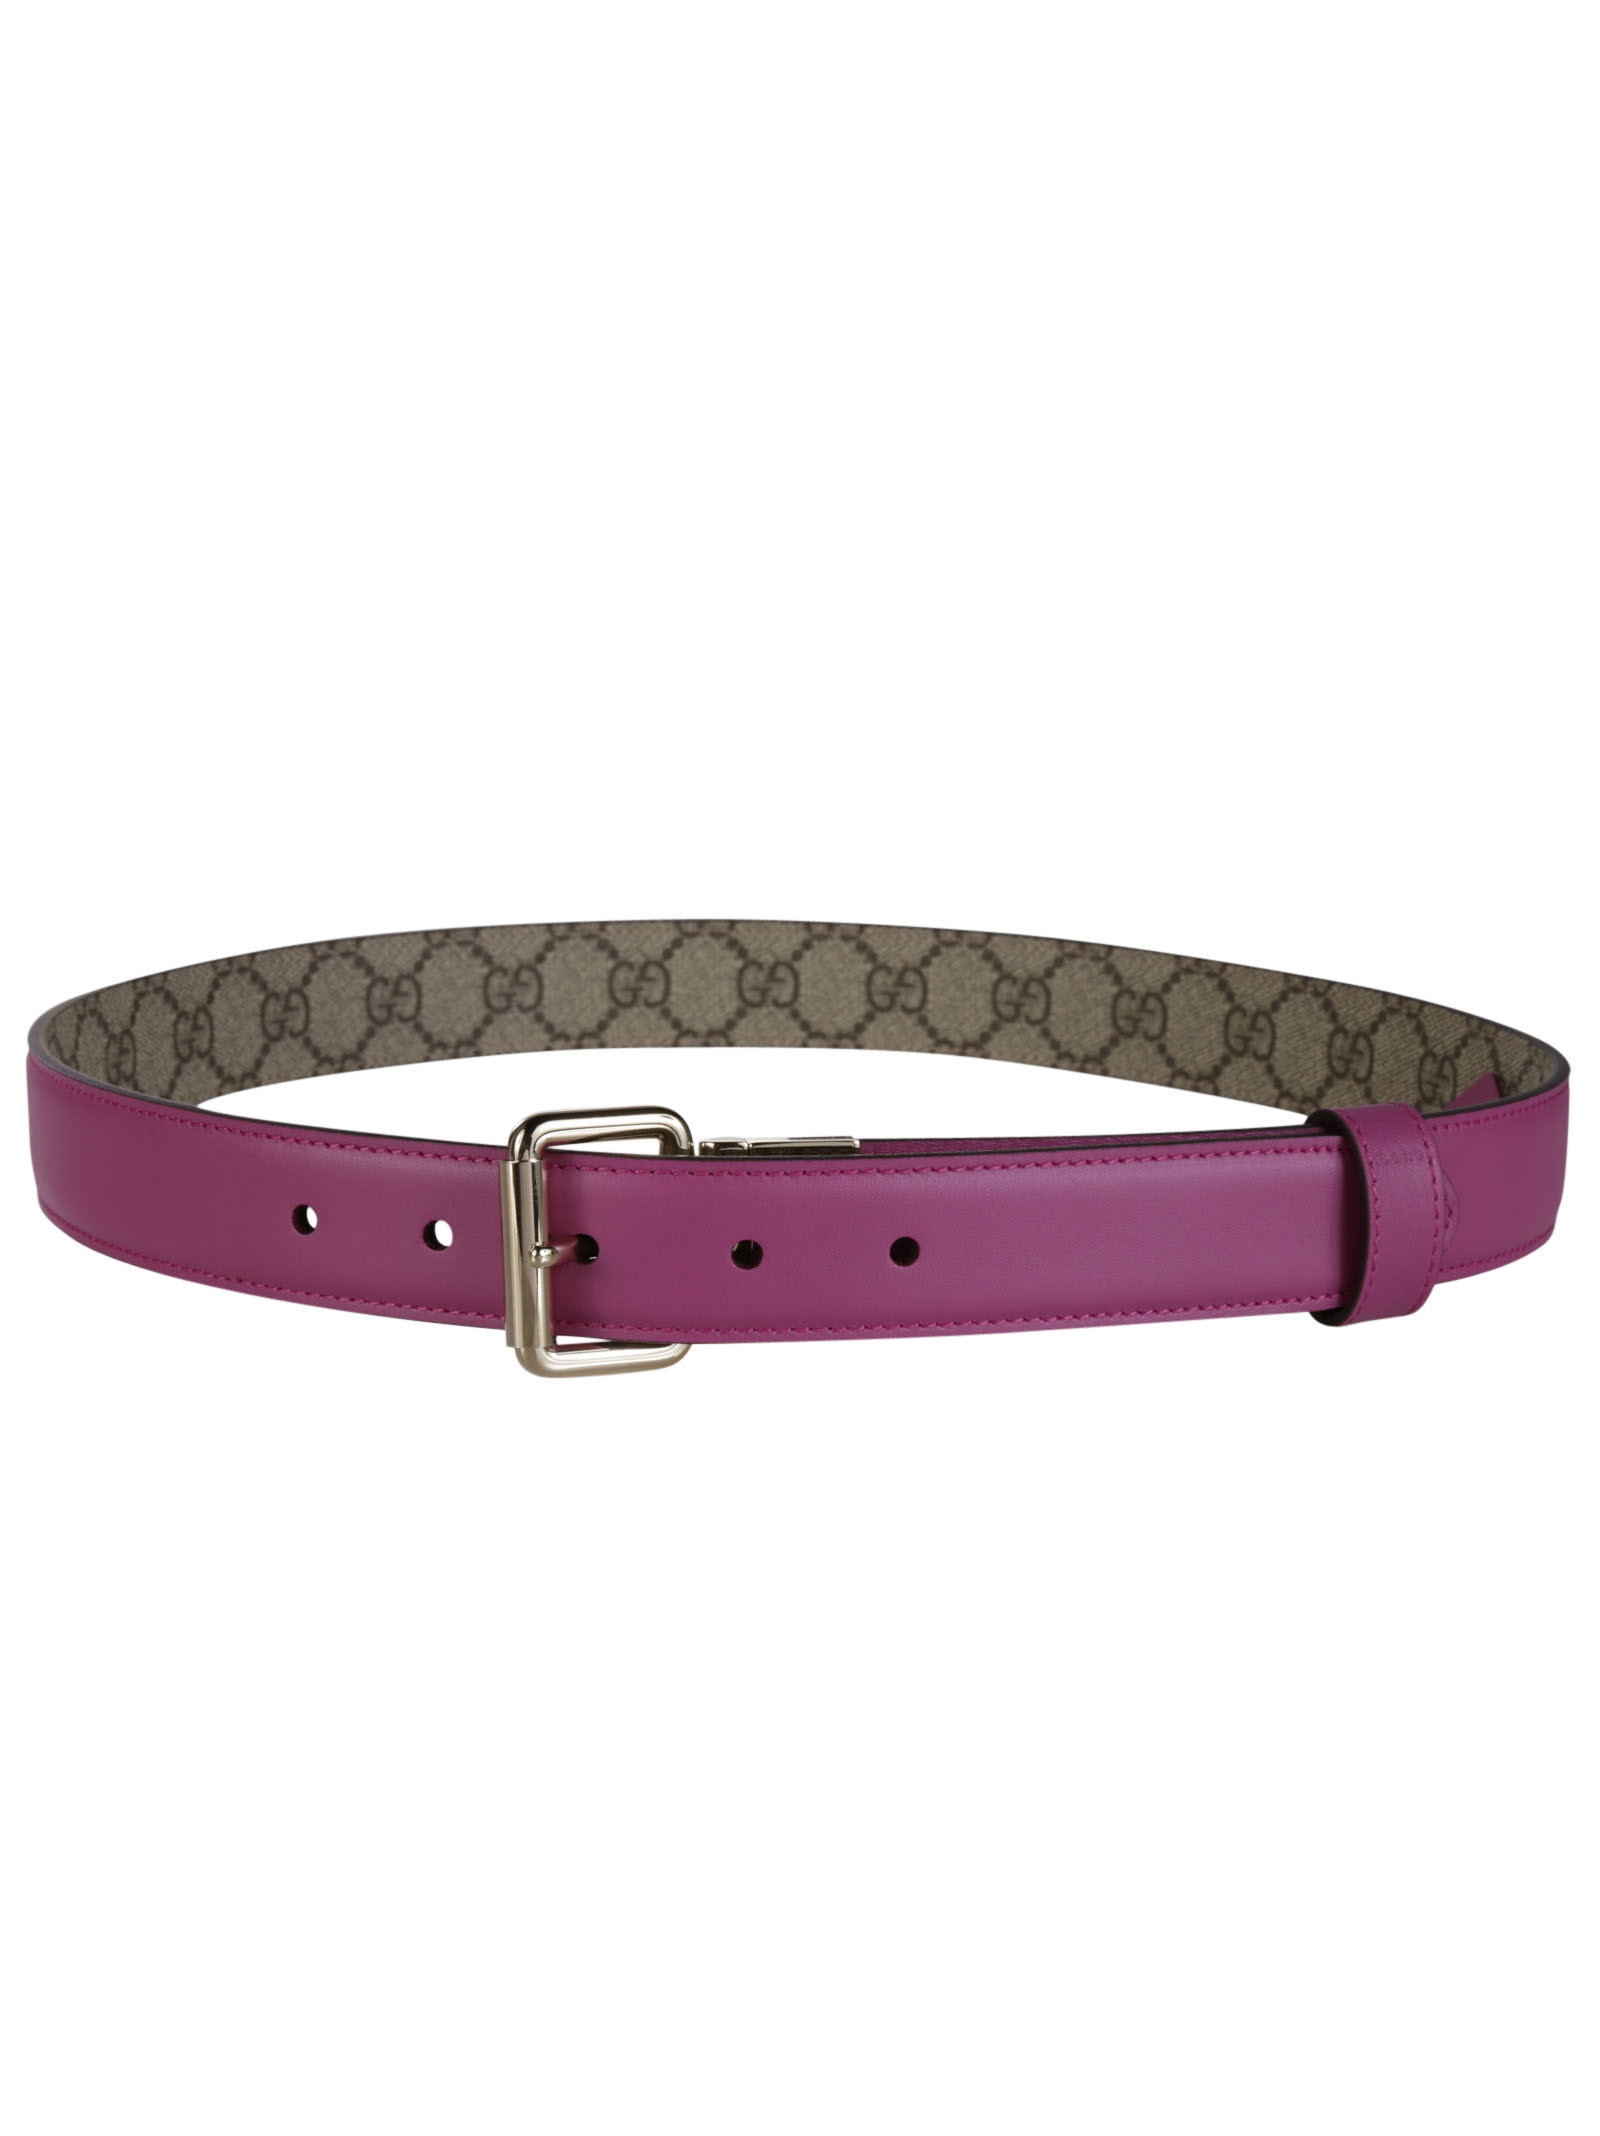 Gucci - Gucci Reversible Leather Belt - 391271 BTTAG 5575 ...